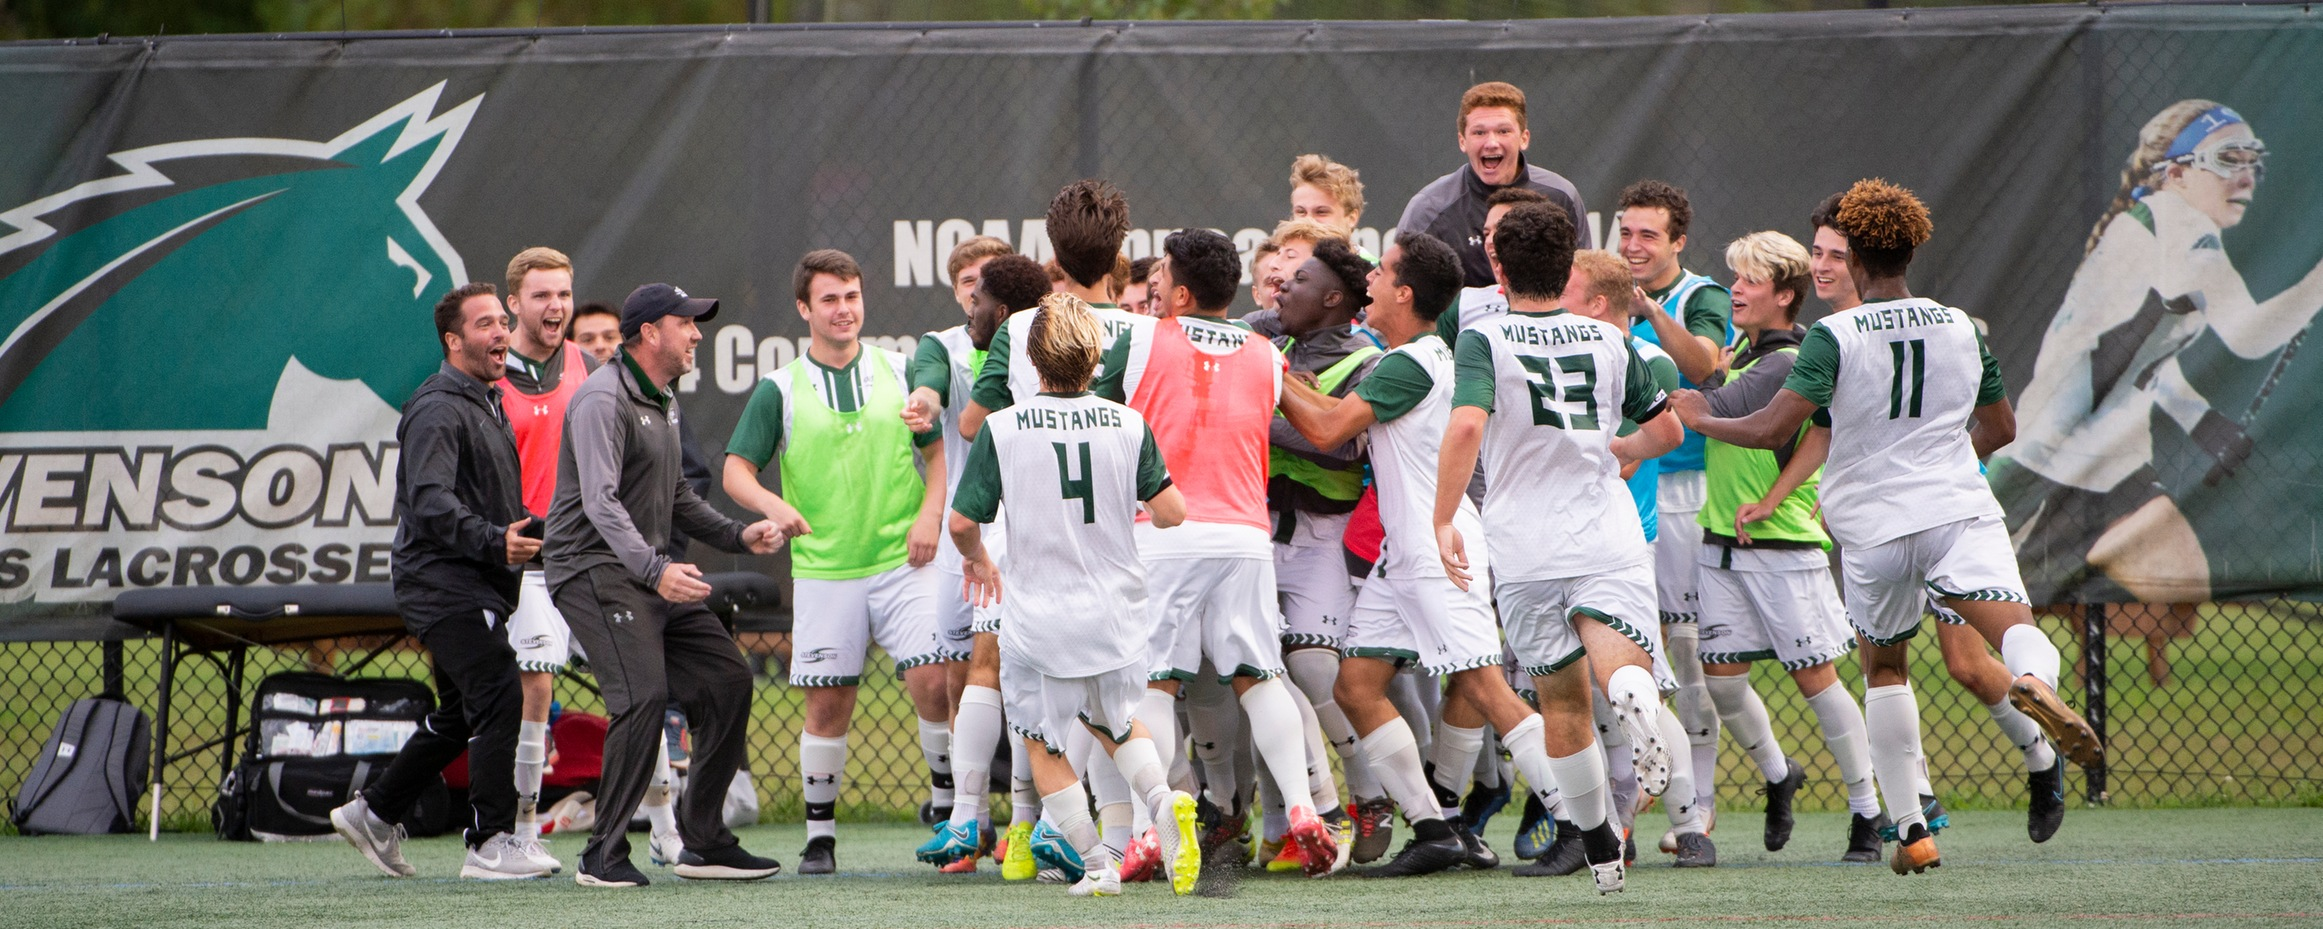 Men's Soccer to Host Fall ID Clinic on October 6